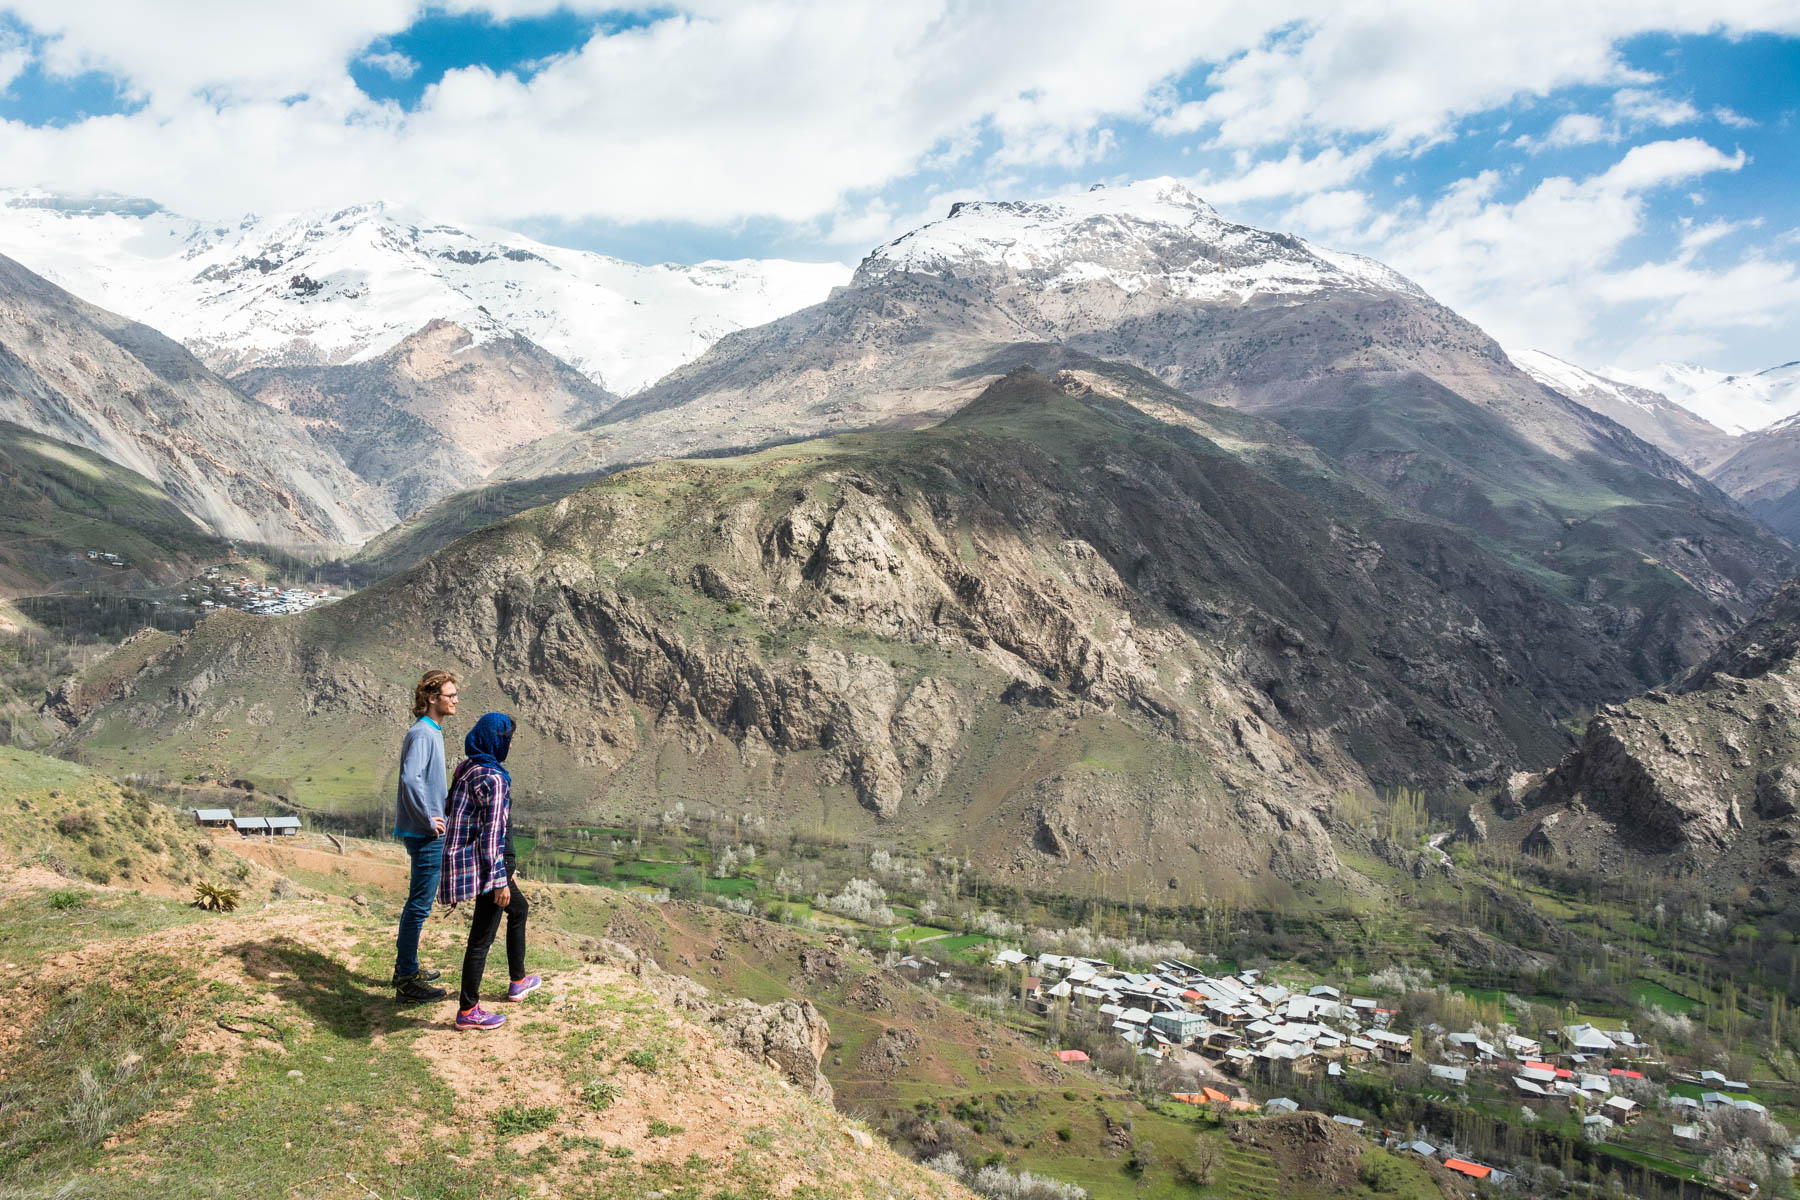 Basking in the awesome that is the Alamut Valley in Iran, home to the Castles of the Assassins